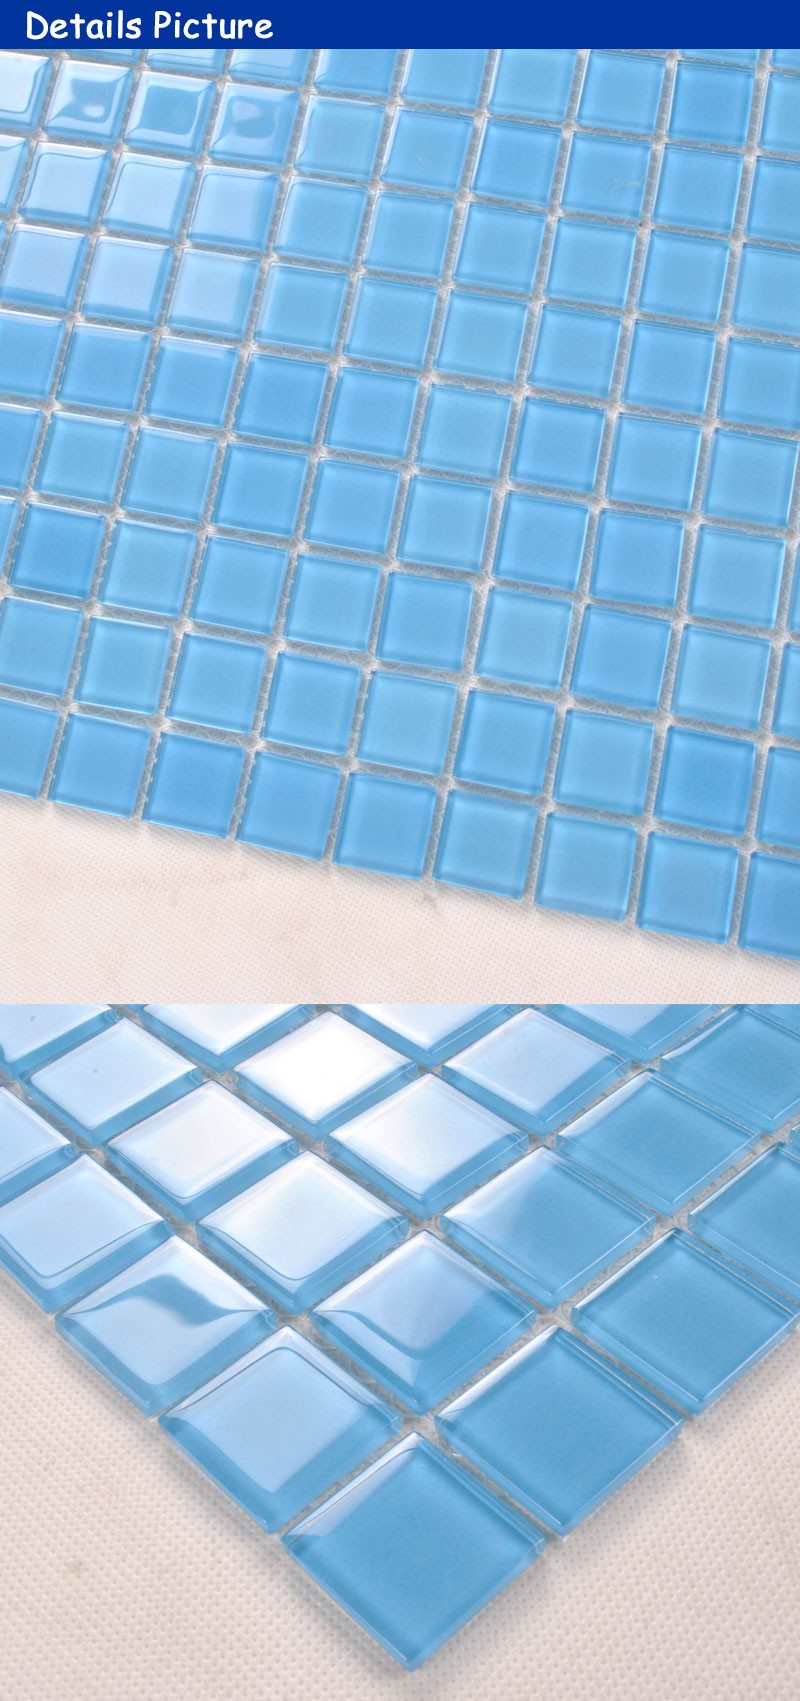 Greek Blue Stained Cutting Glass Mosaic Wall Tile For Swimming Pool ...